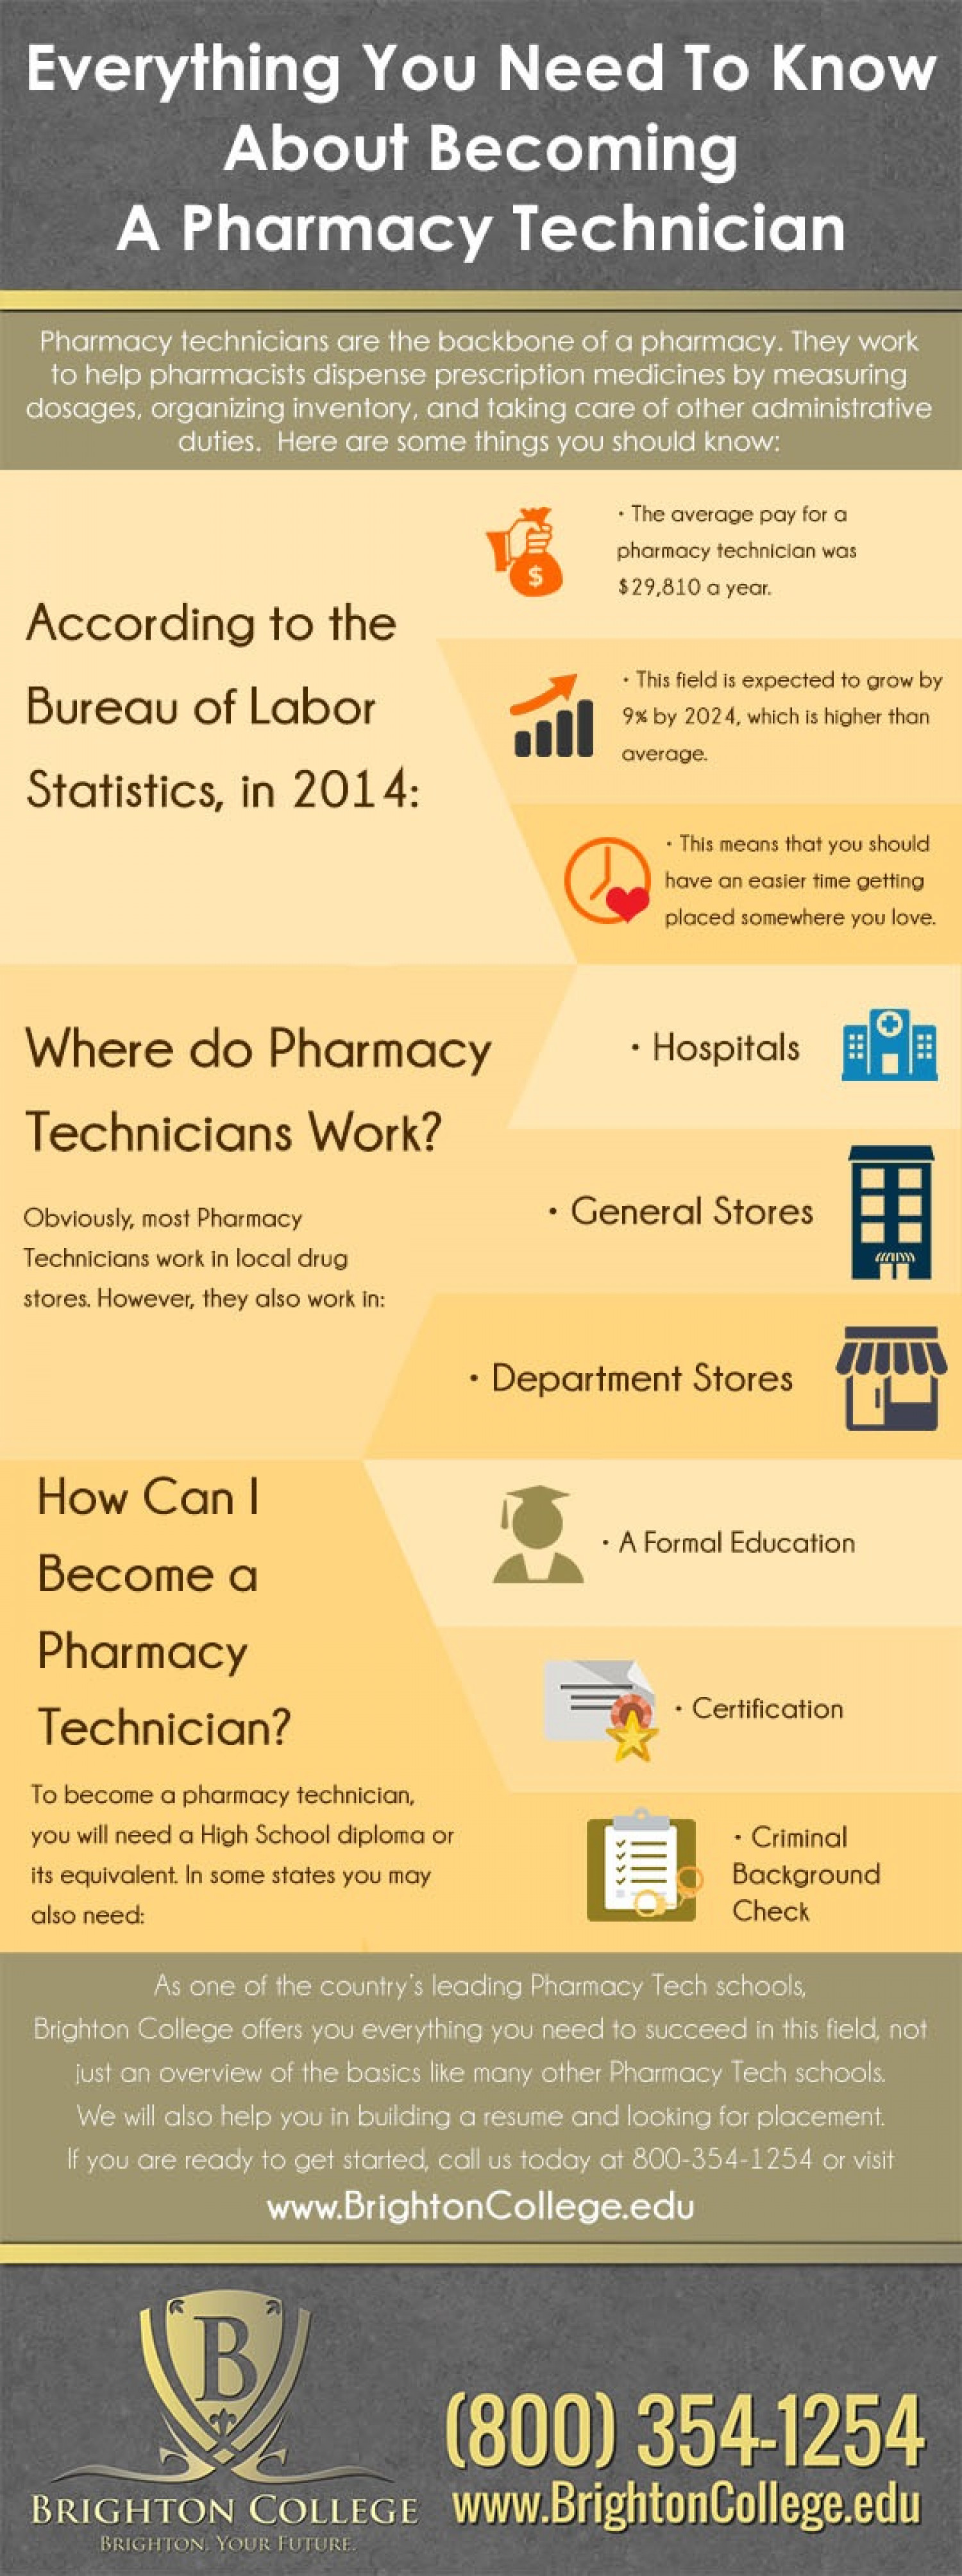 Everything You Need To Know About Becoming A Pharmacy Technician Infographic